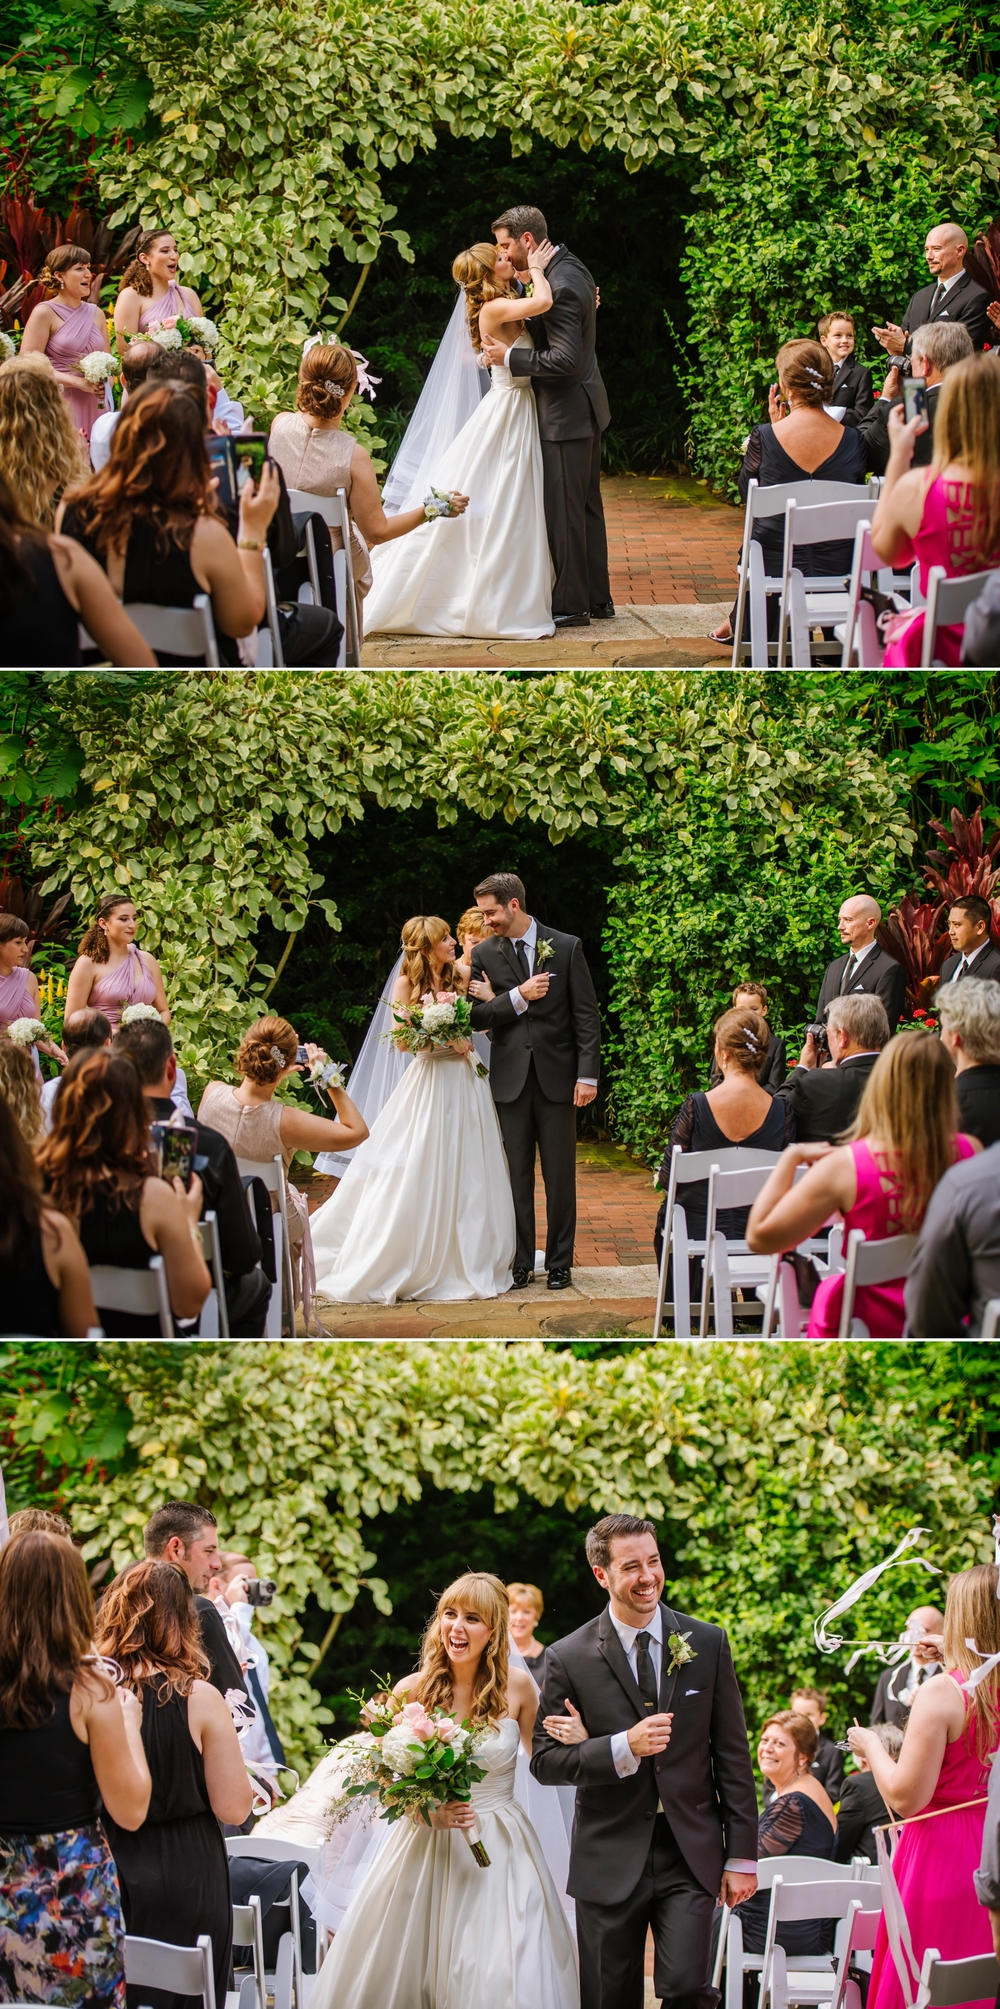 st-pete-hotel-zamora-sunken-gardens-rooftop-wedding-photography_0010.jpg